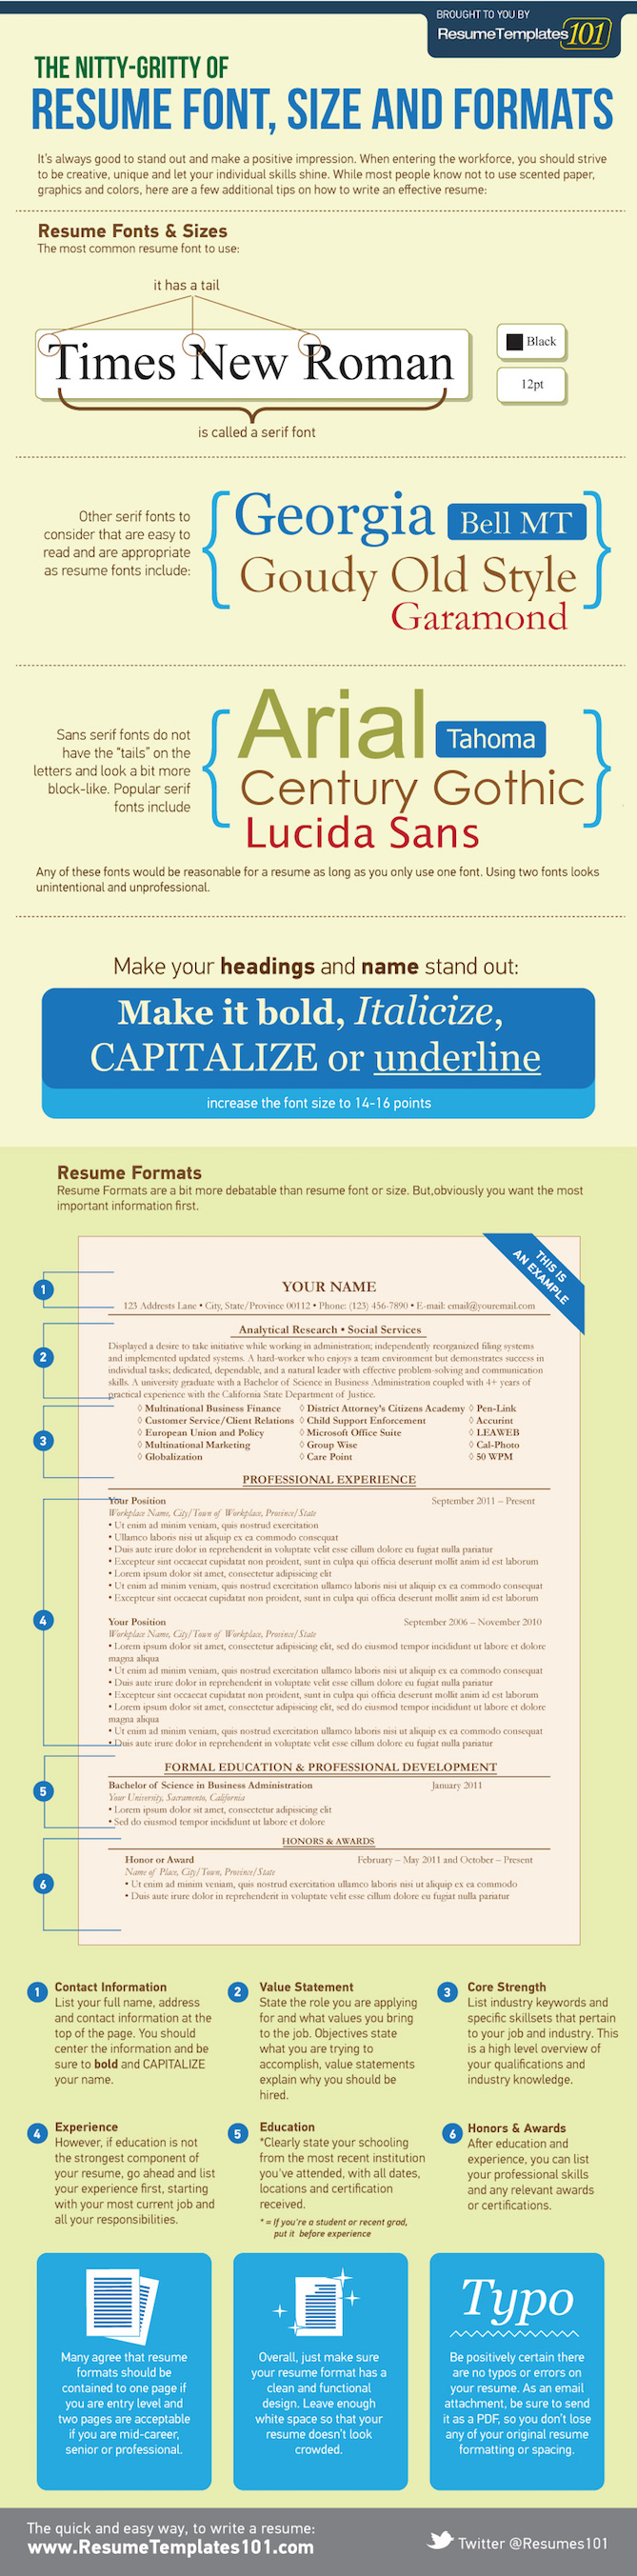 Resume format tips you need to know in 2018 sample formats included infographic on how to format a resume using the best font type font size altavistaventures Choice Image